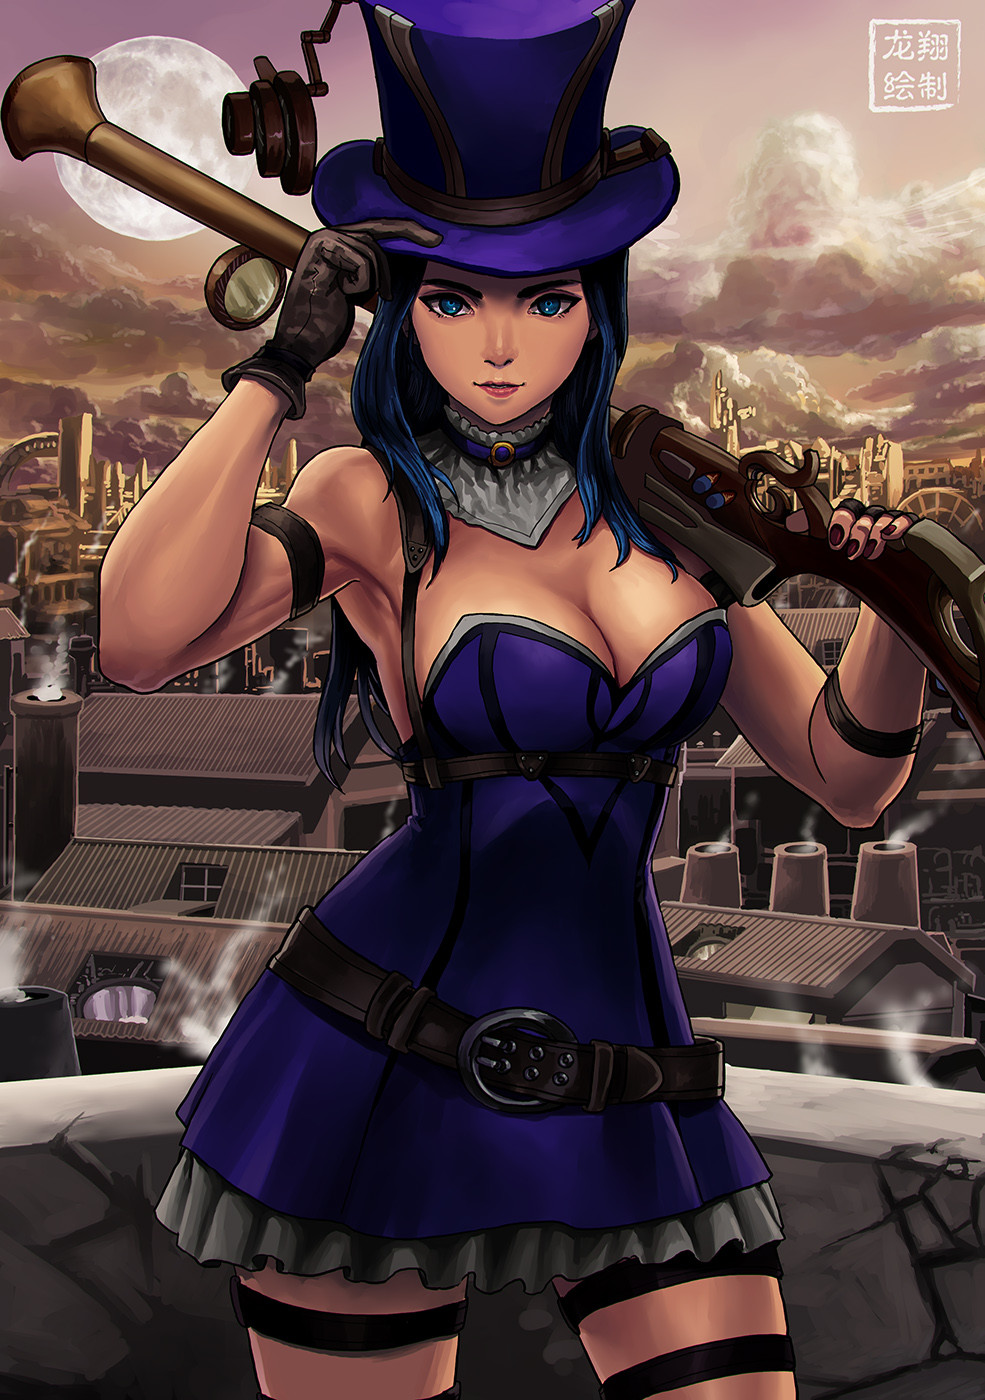 Sheriff Caitlyn Hot Fan Arts